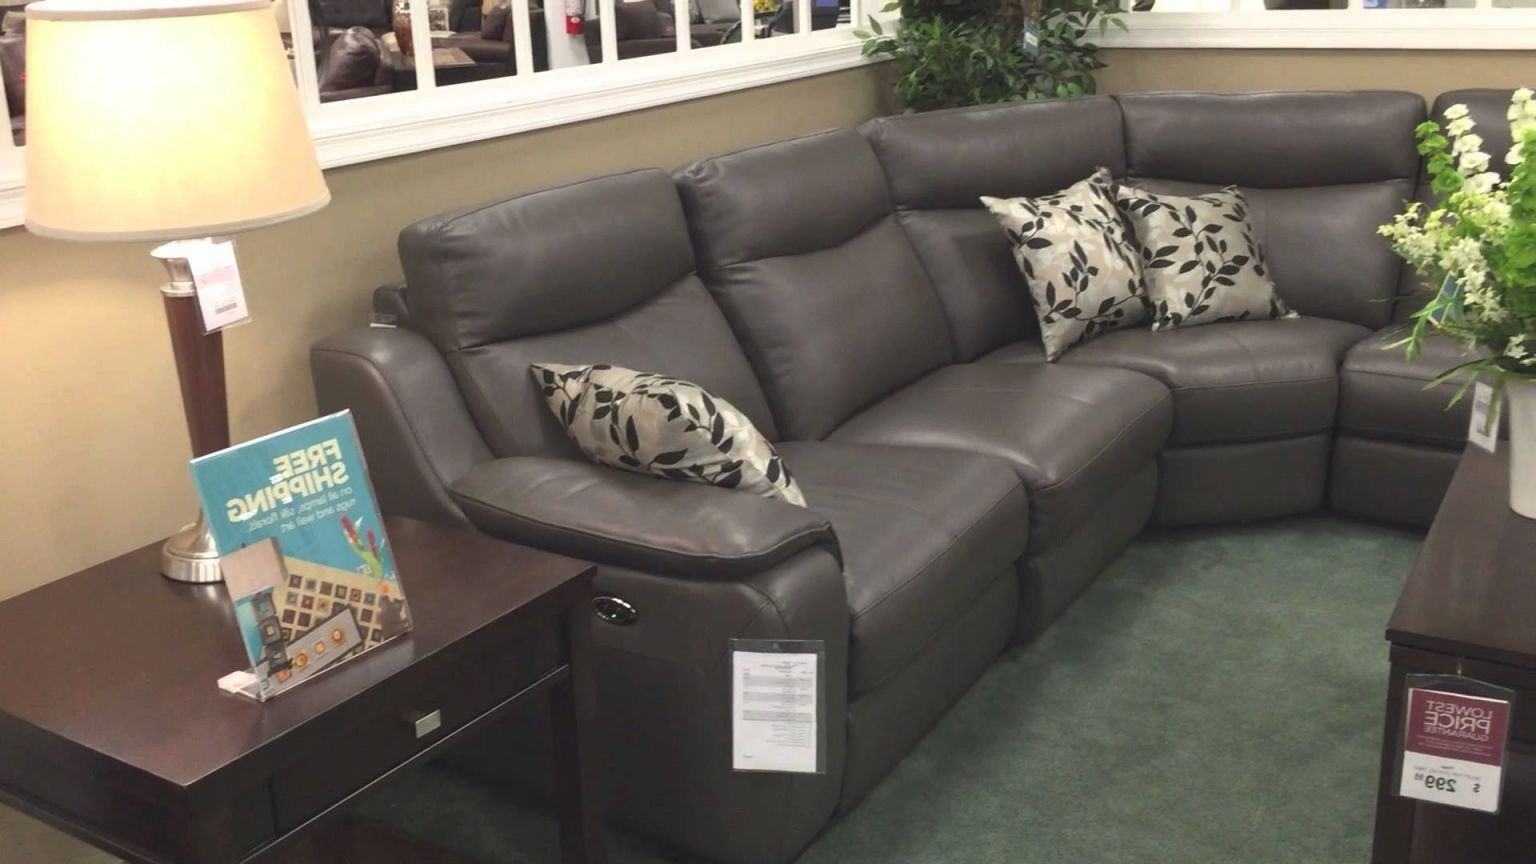 20 Collection Of Raymour And Flanigan Sectional Sofas with regard to Lovely Raymour And Flanigan Sectional Sofas